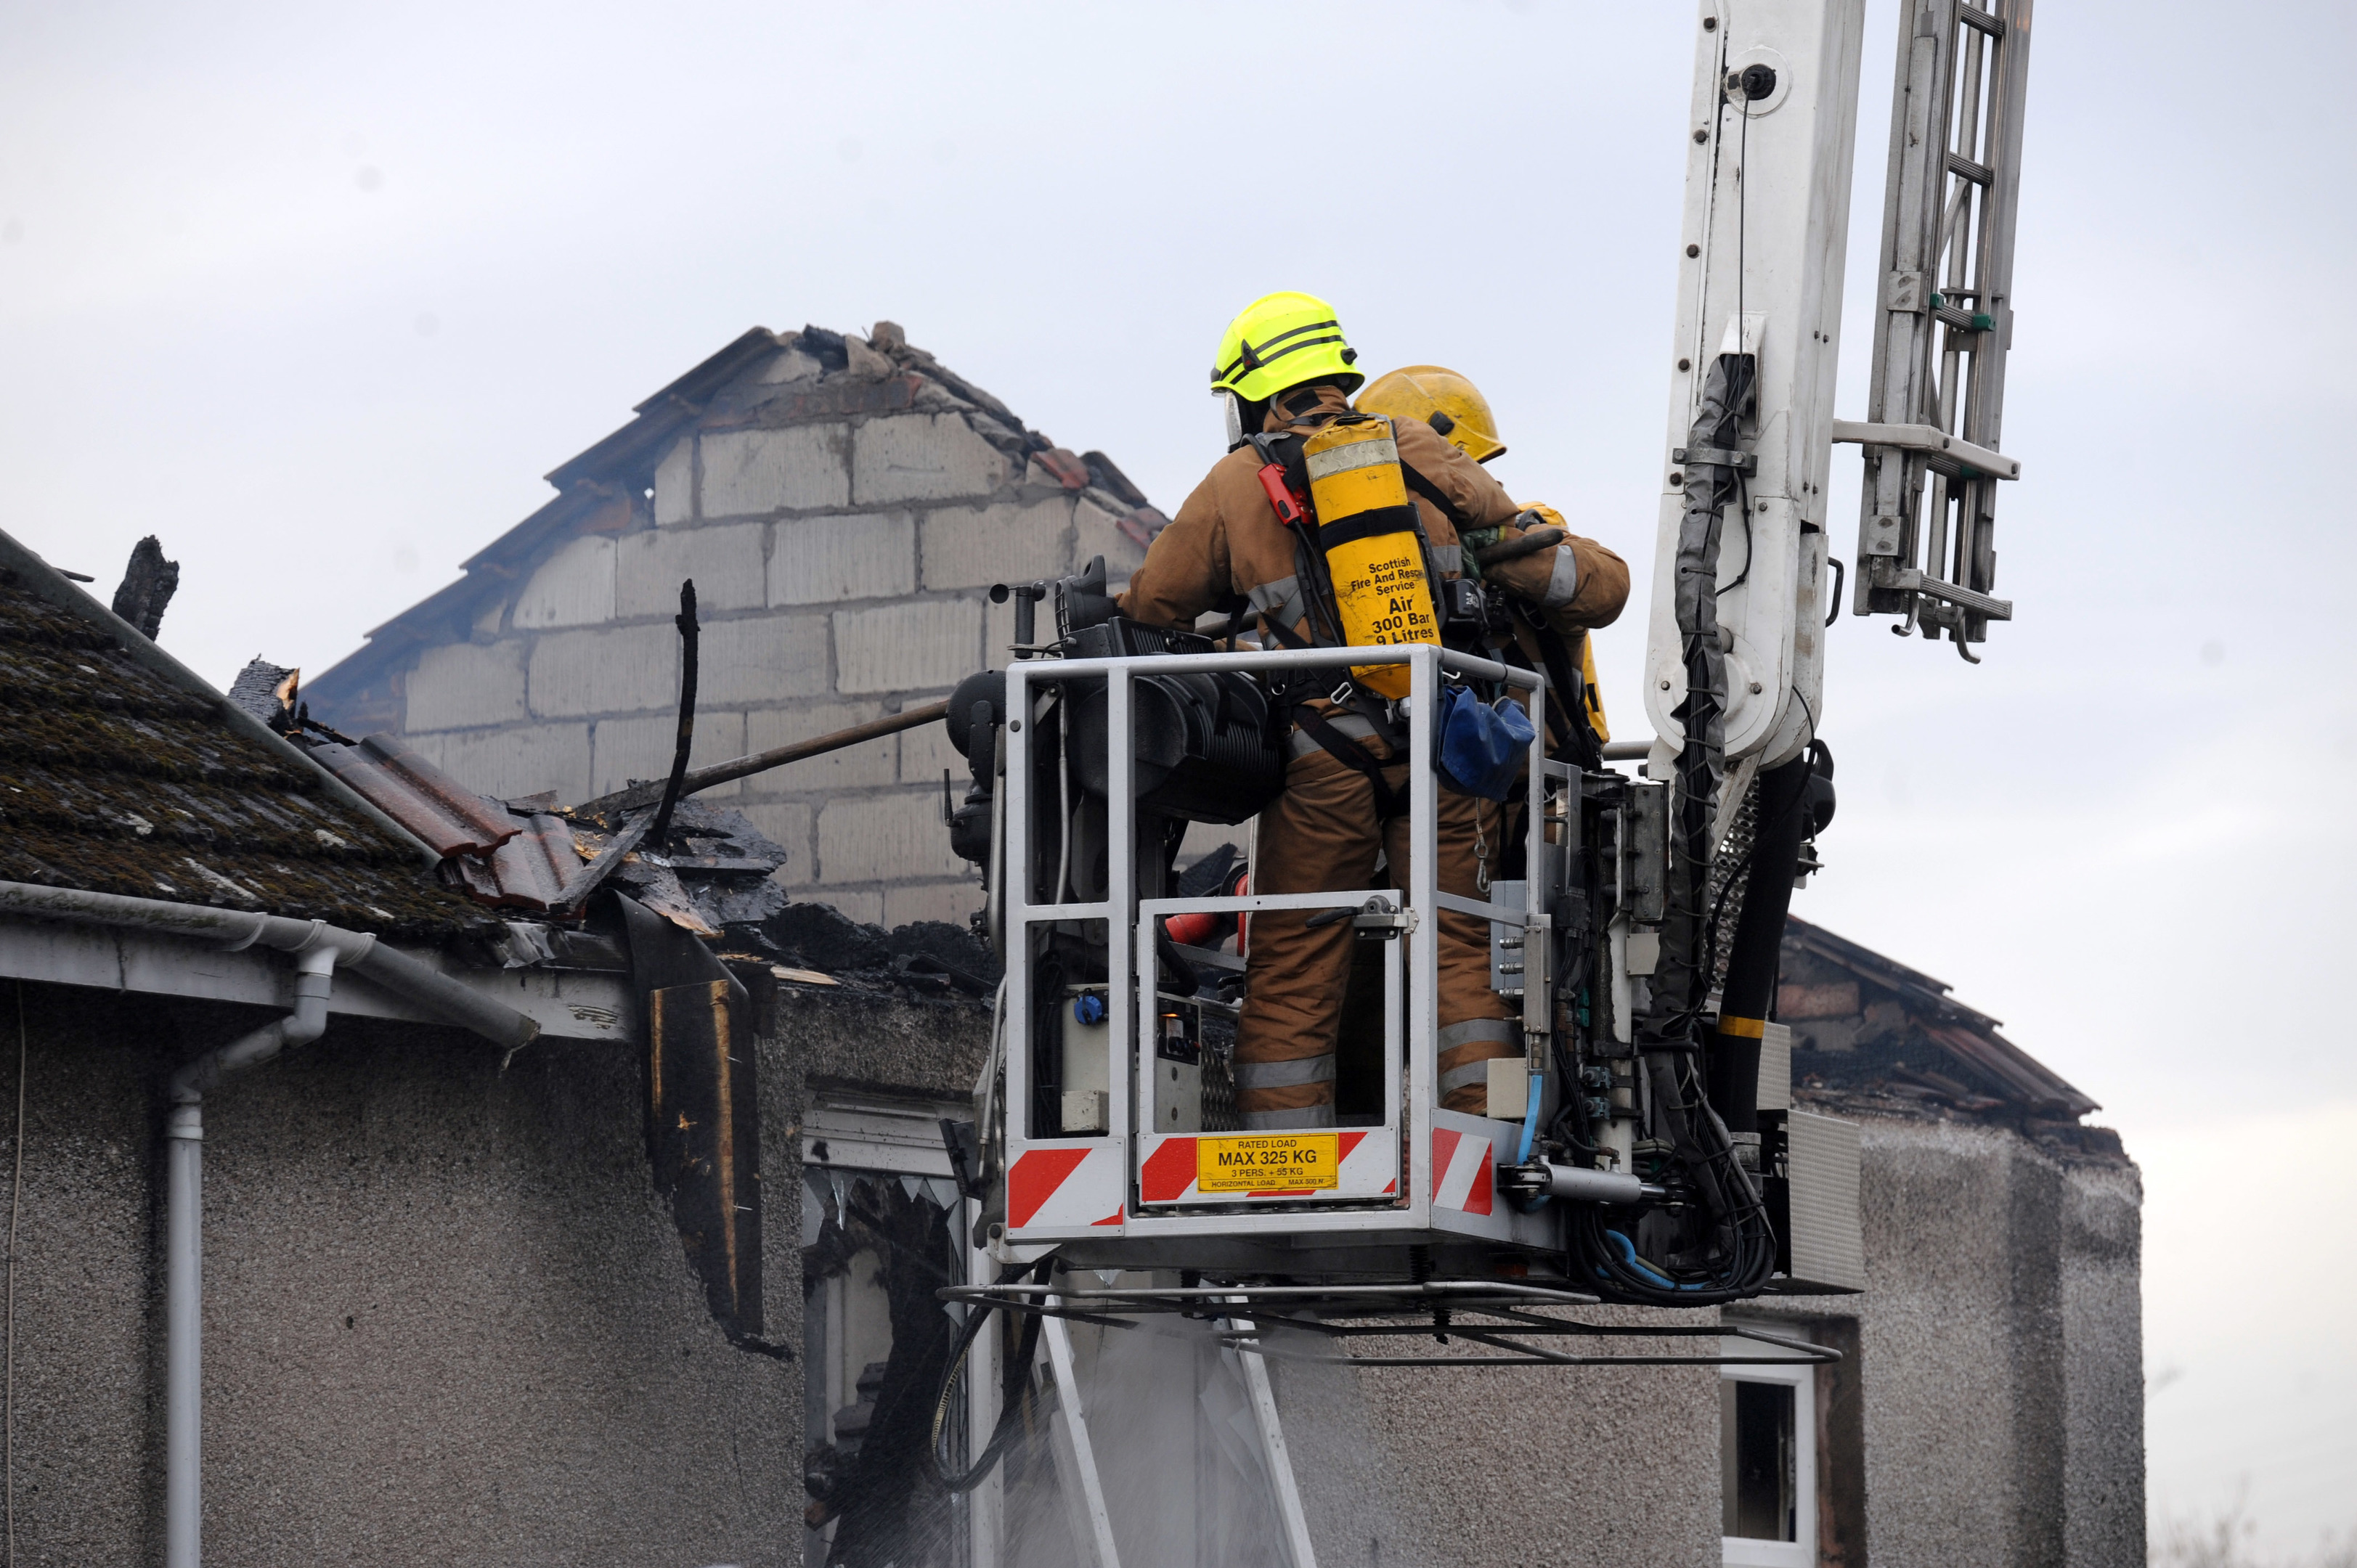 Firefighters take control of the blaze.